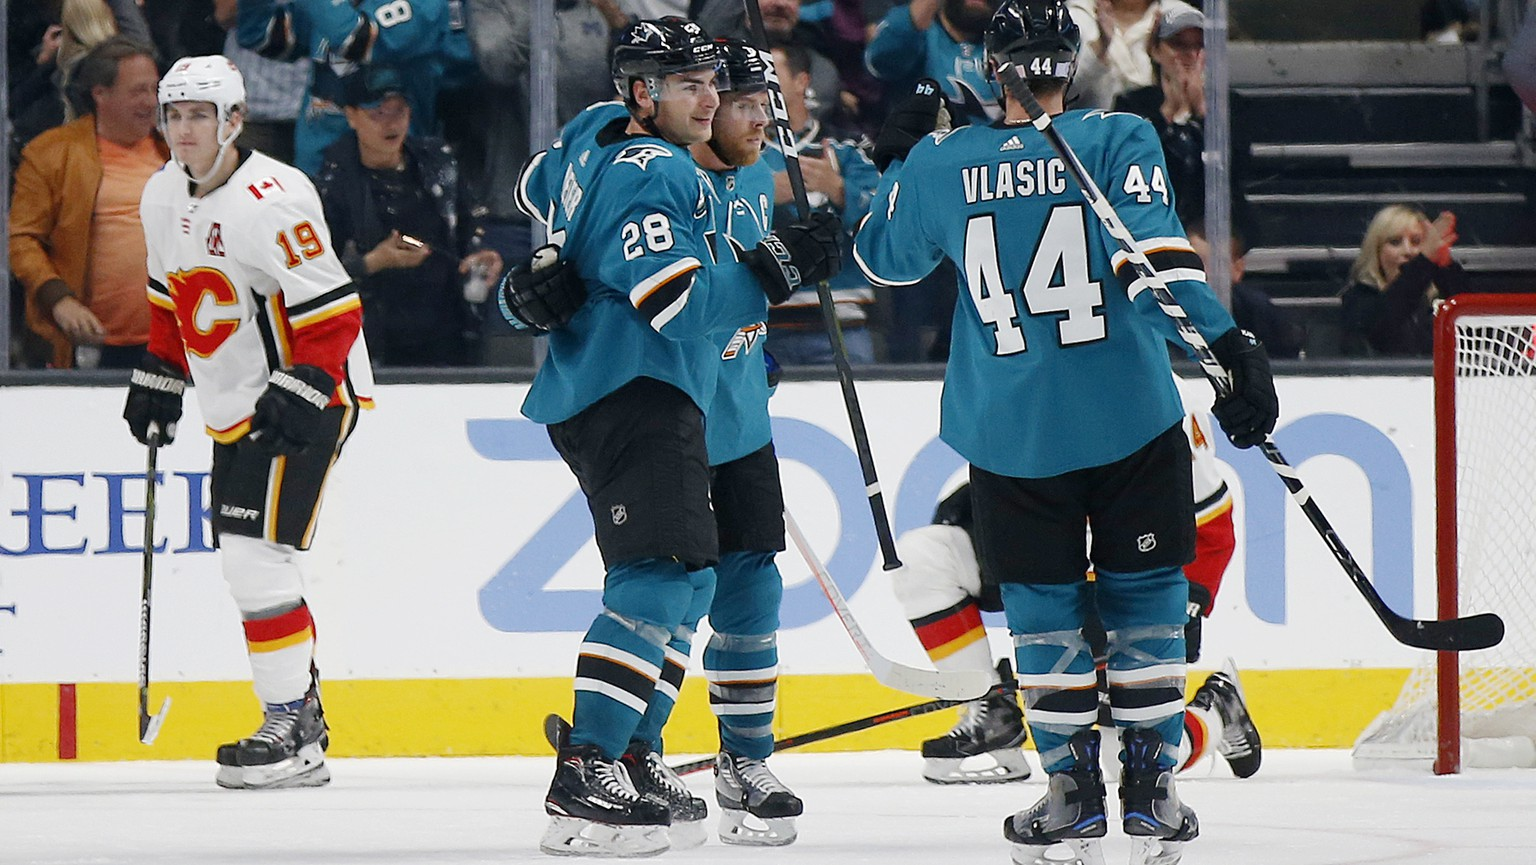 Calgary Flames' Matthew Tkachuk (19) skates away as the San Jose Sharks' Timo Meier (28), Joe Pavelski (8), center, and Marc-Edouard Vlasic (44) celebrate a goal in the third period of an NHL hockey game in San Jose, Calif., Sunday, Nov. 11, 2018. The Sharks won, 3-1. (AP Photo/Josie Lepe)